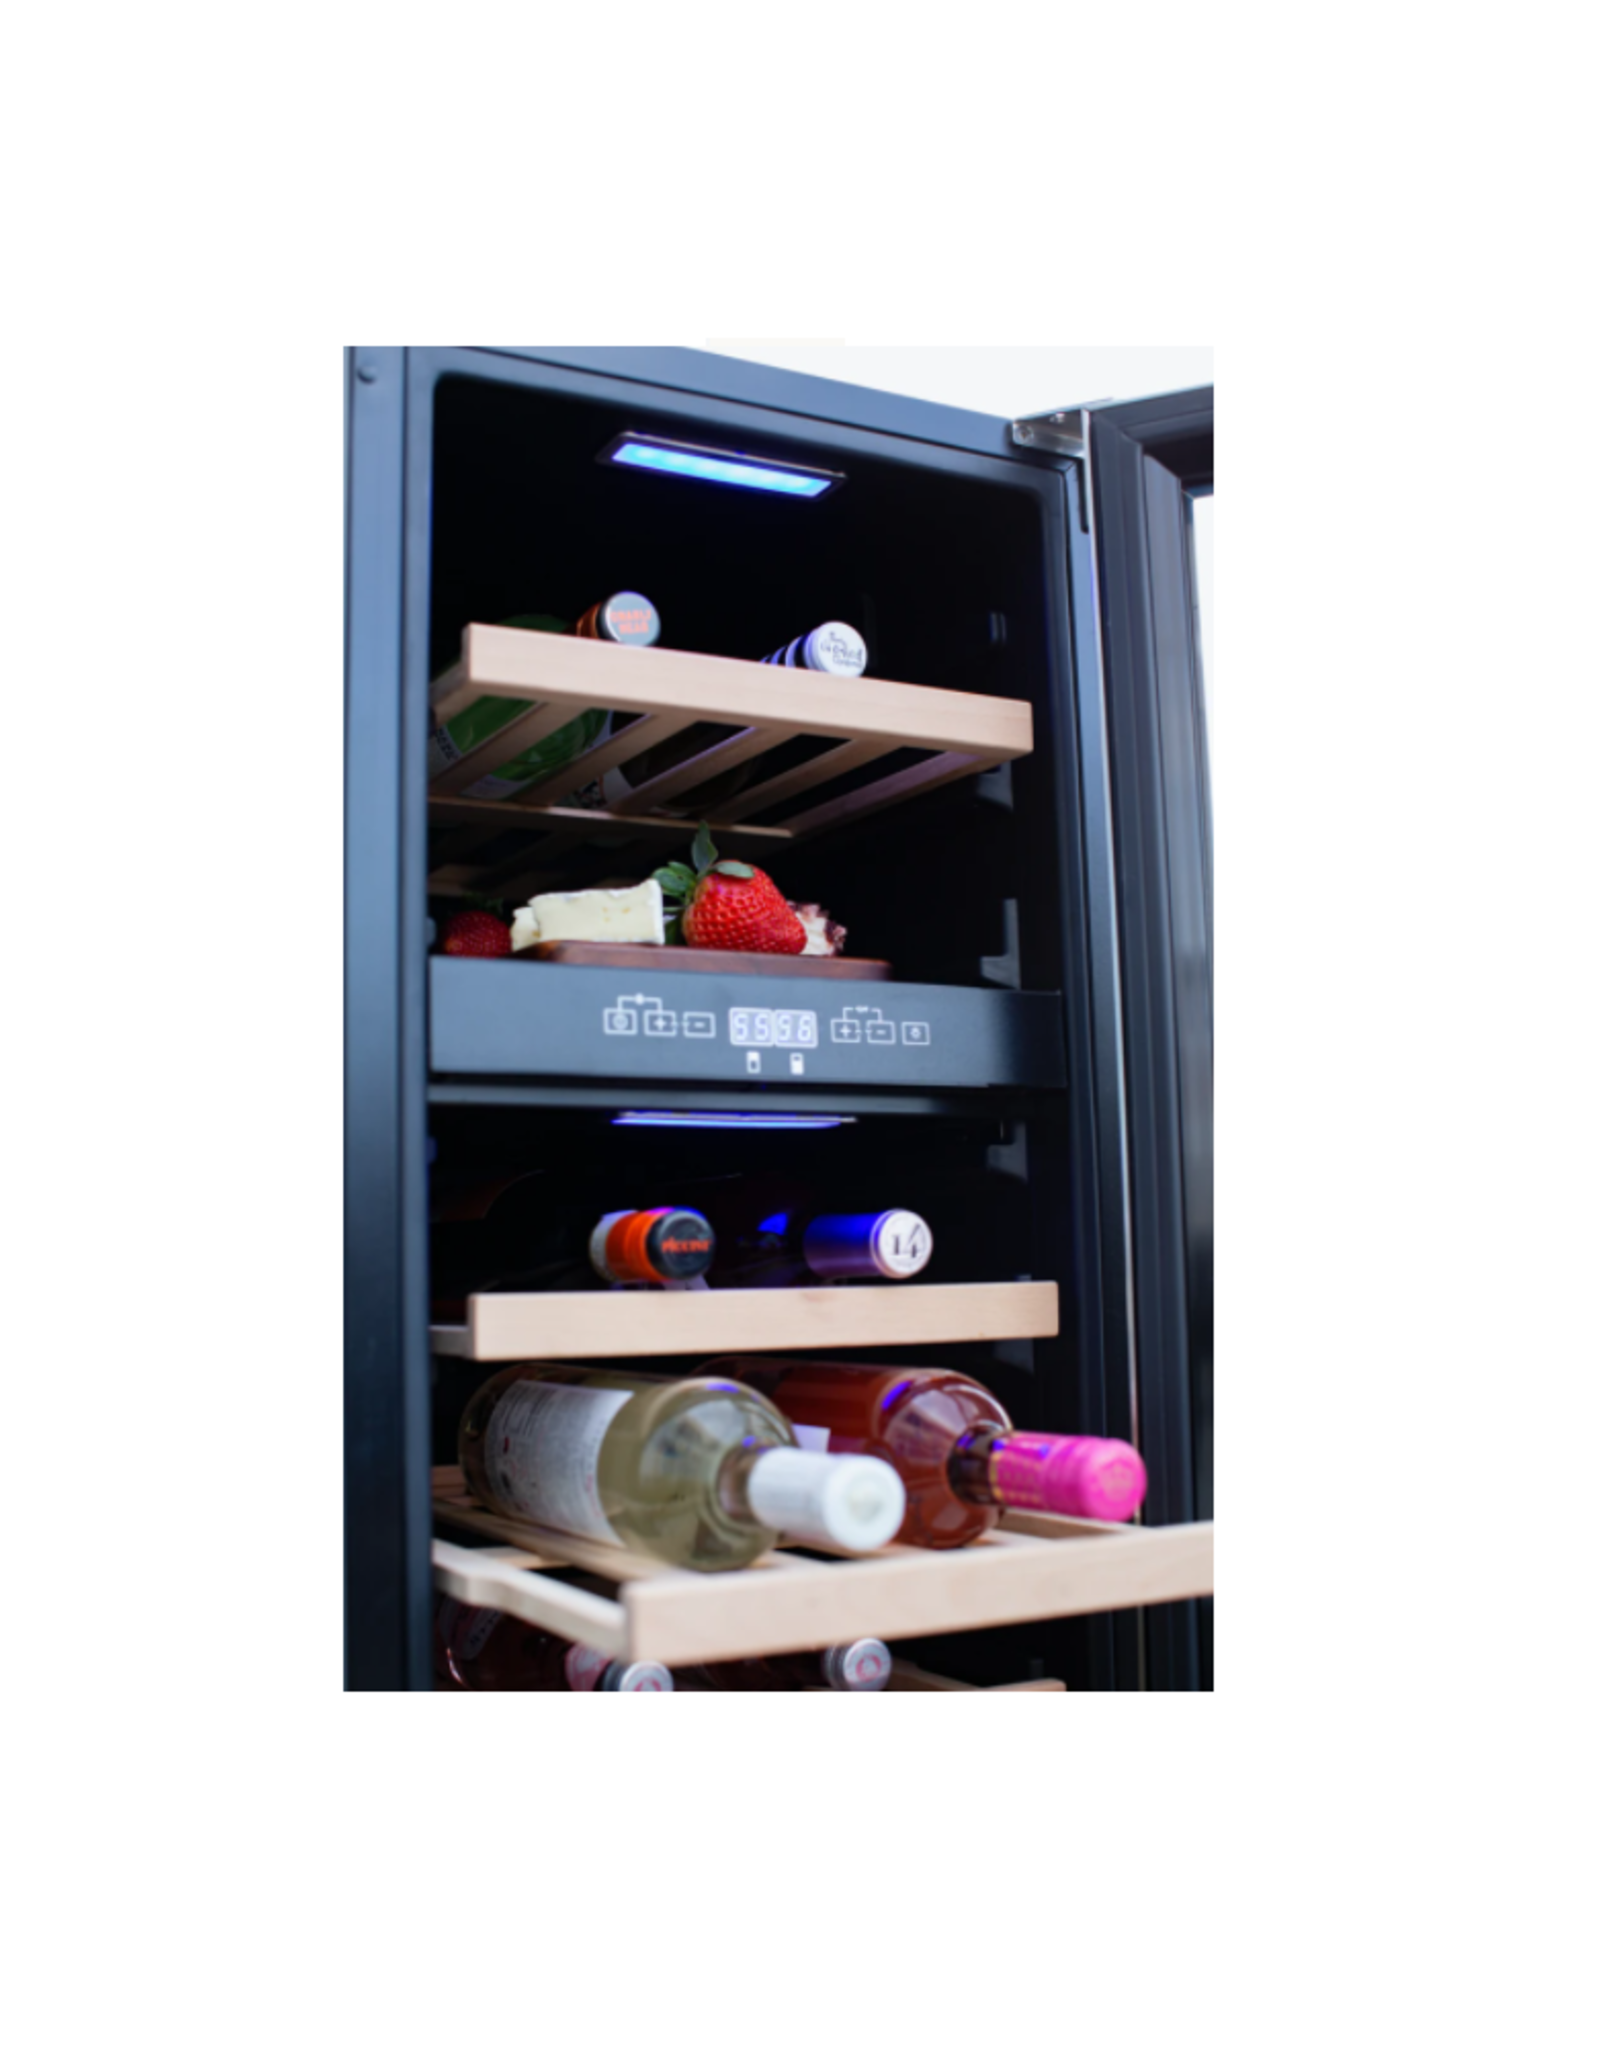 Renaissance Cooking Systems Renaissance Cooking Systems The Dual Zone Outdoor Rated Wine Cooler - RWC1